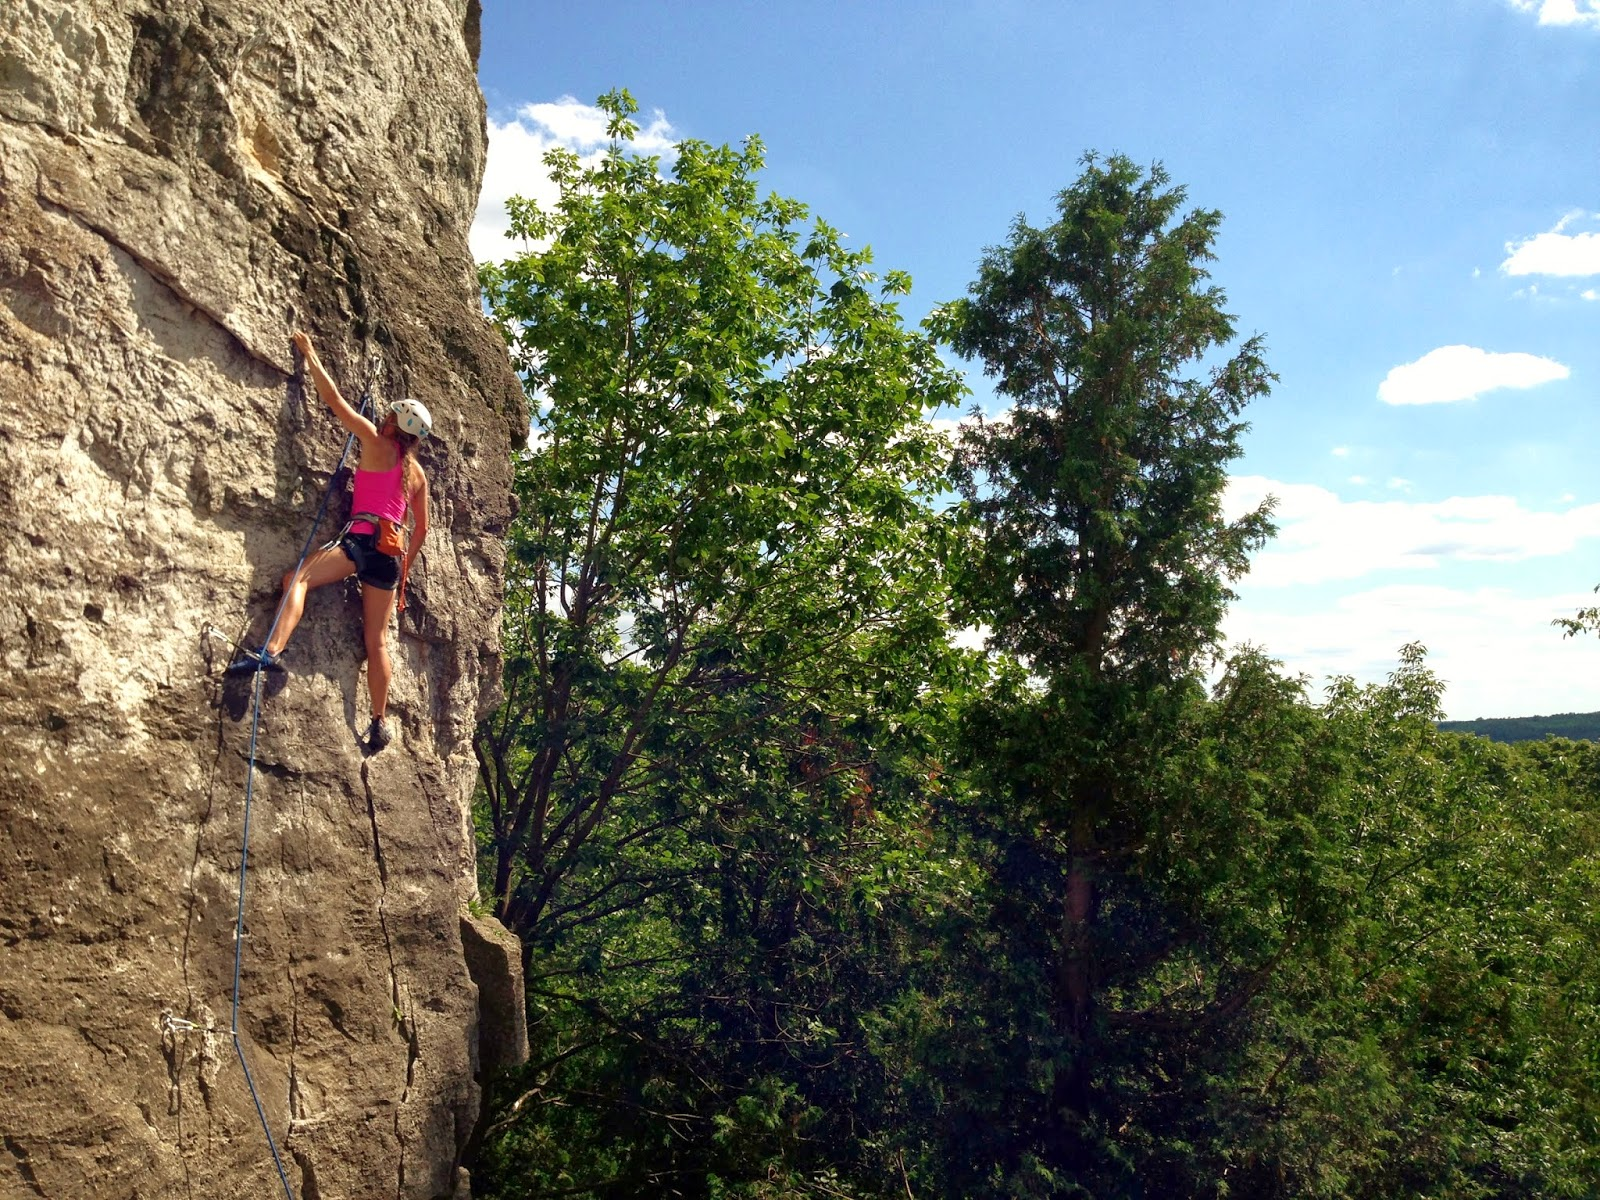 Lauren Kussen Leads Her First Sport Route With On The Rocks